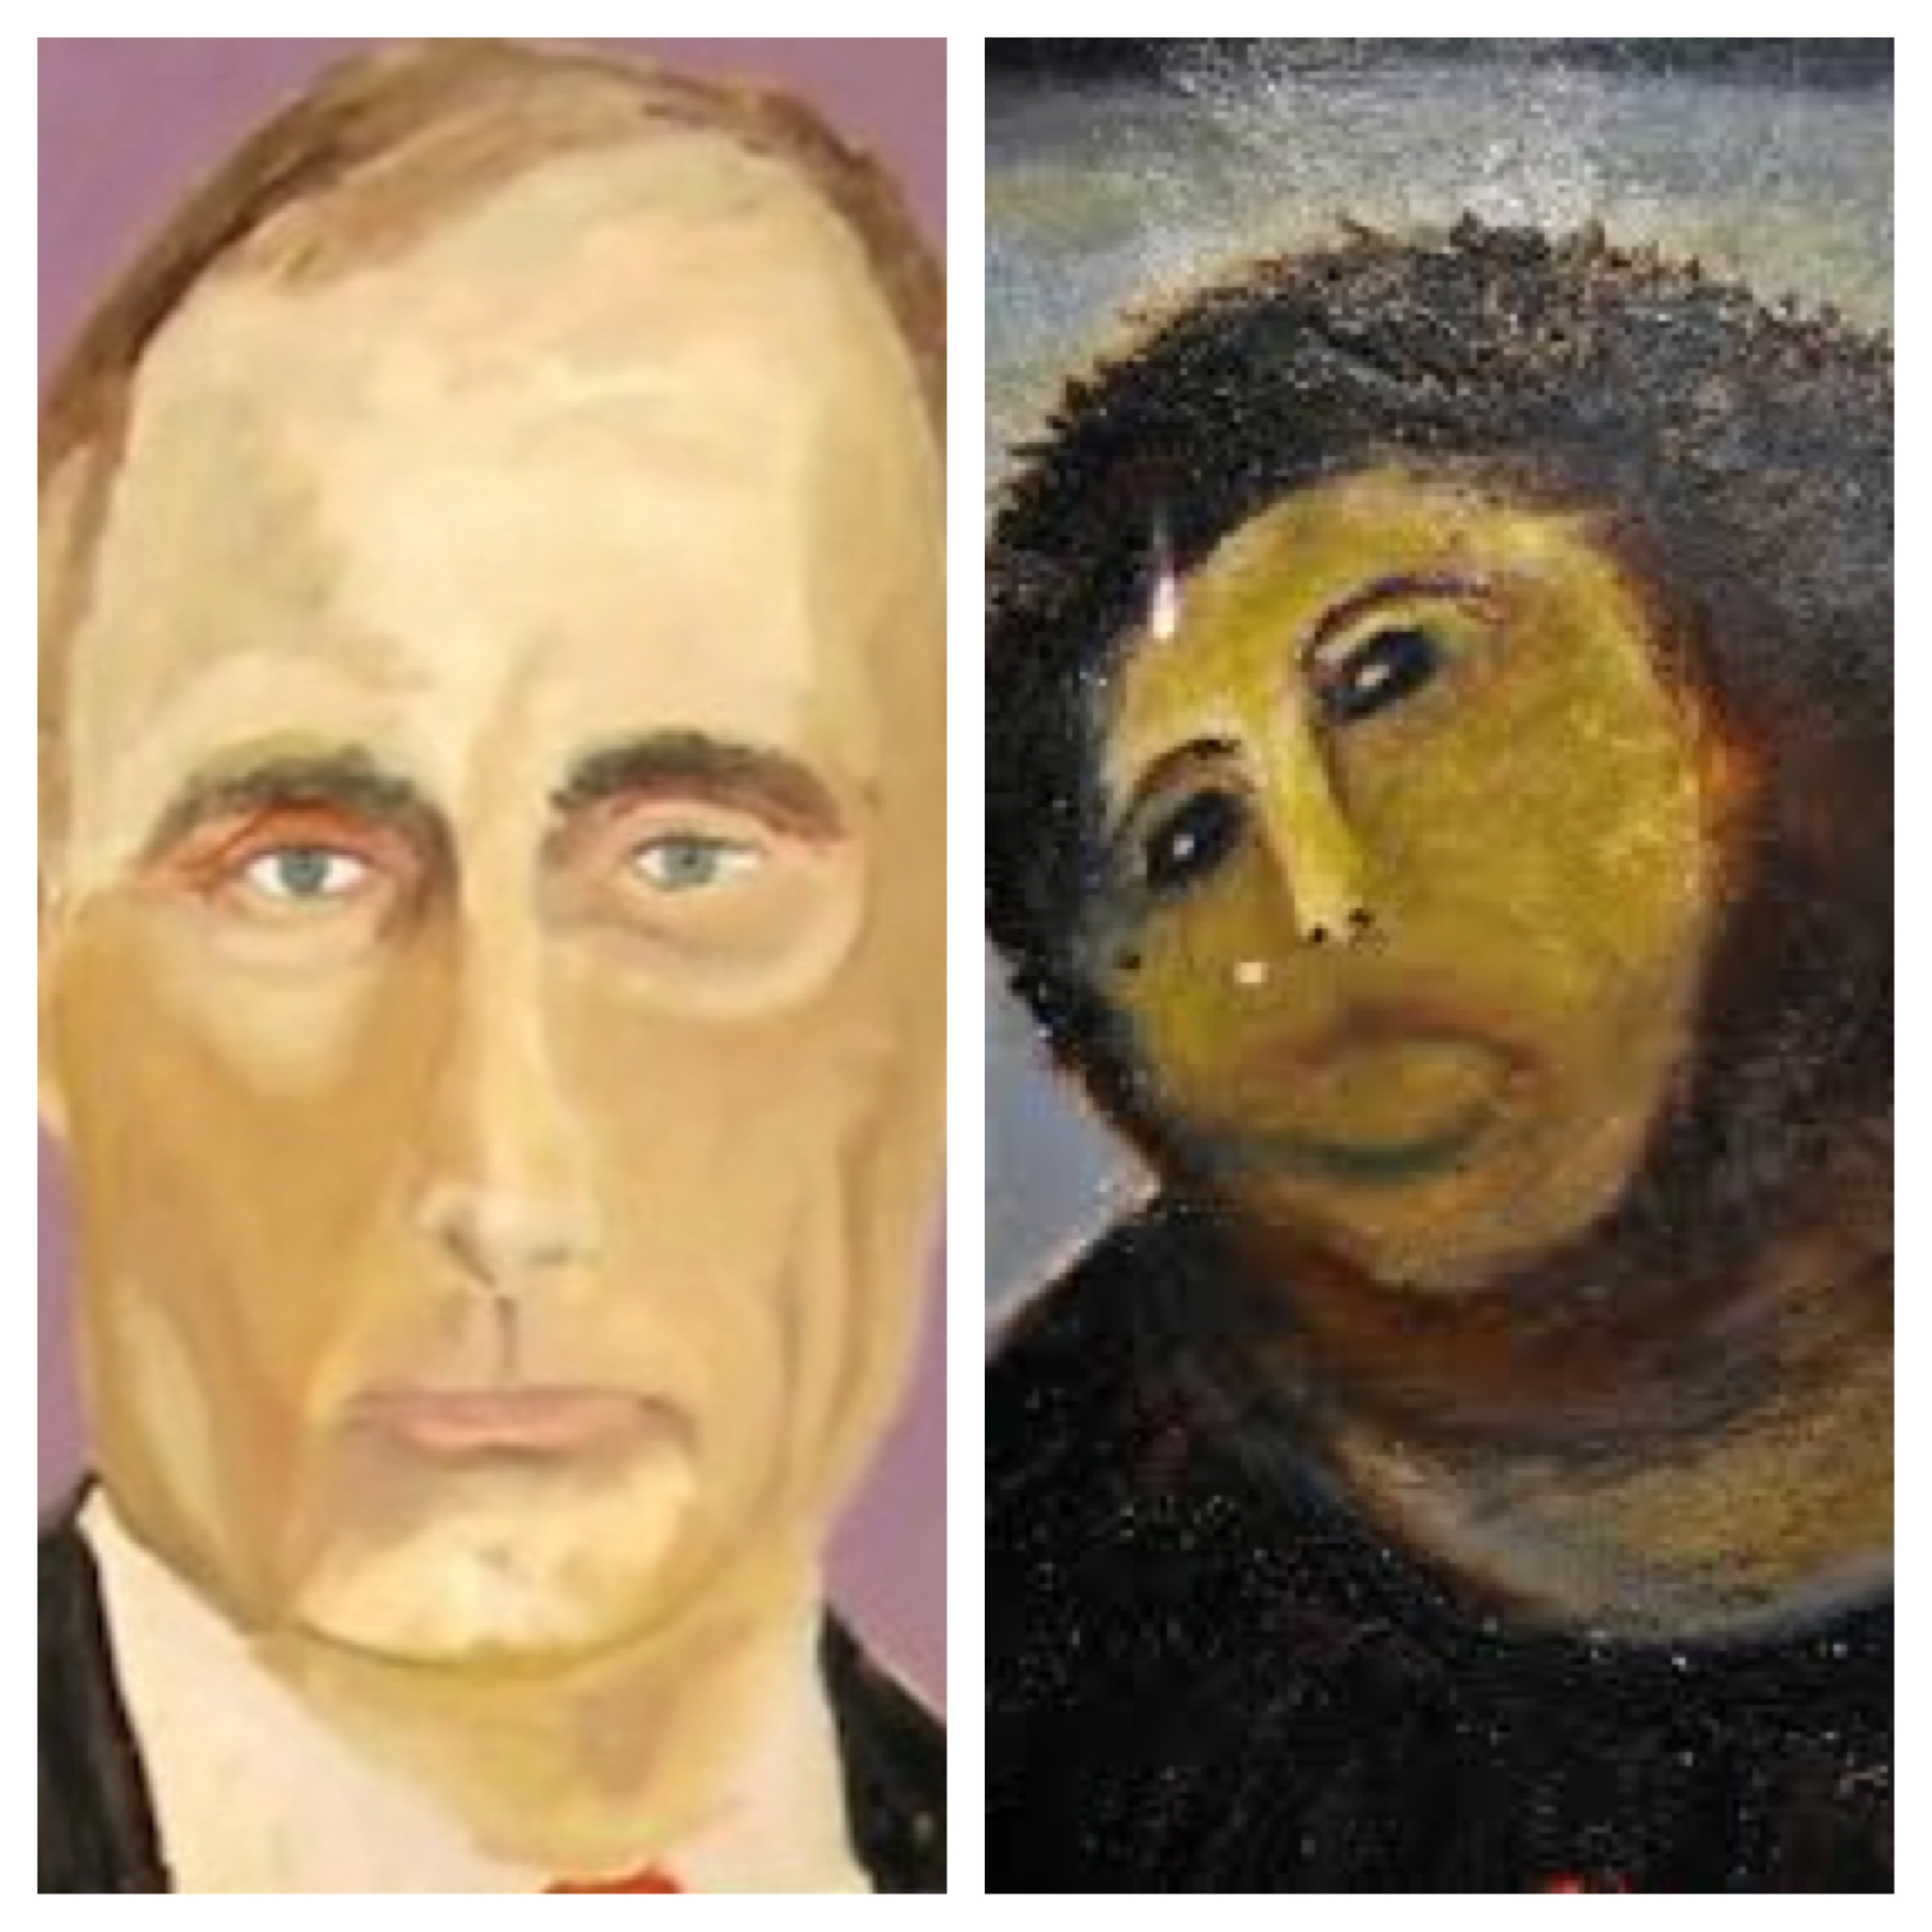 http://jaclynschoknecht.files.wordpress.com/2014/04/putin_defaced_painting_spain.jpg